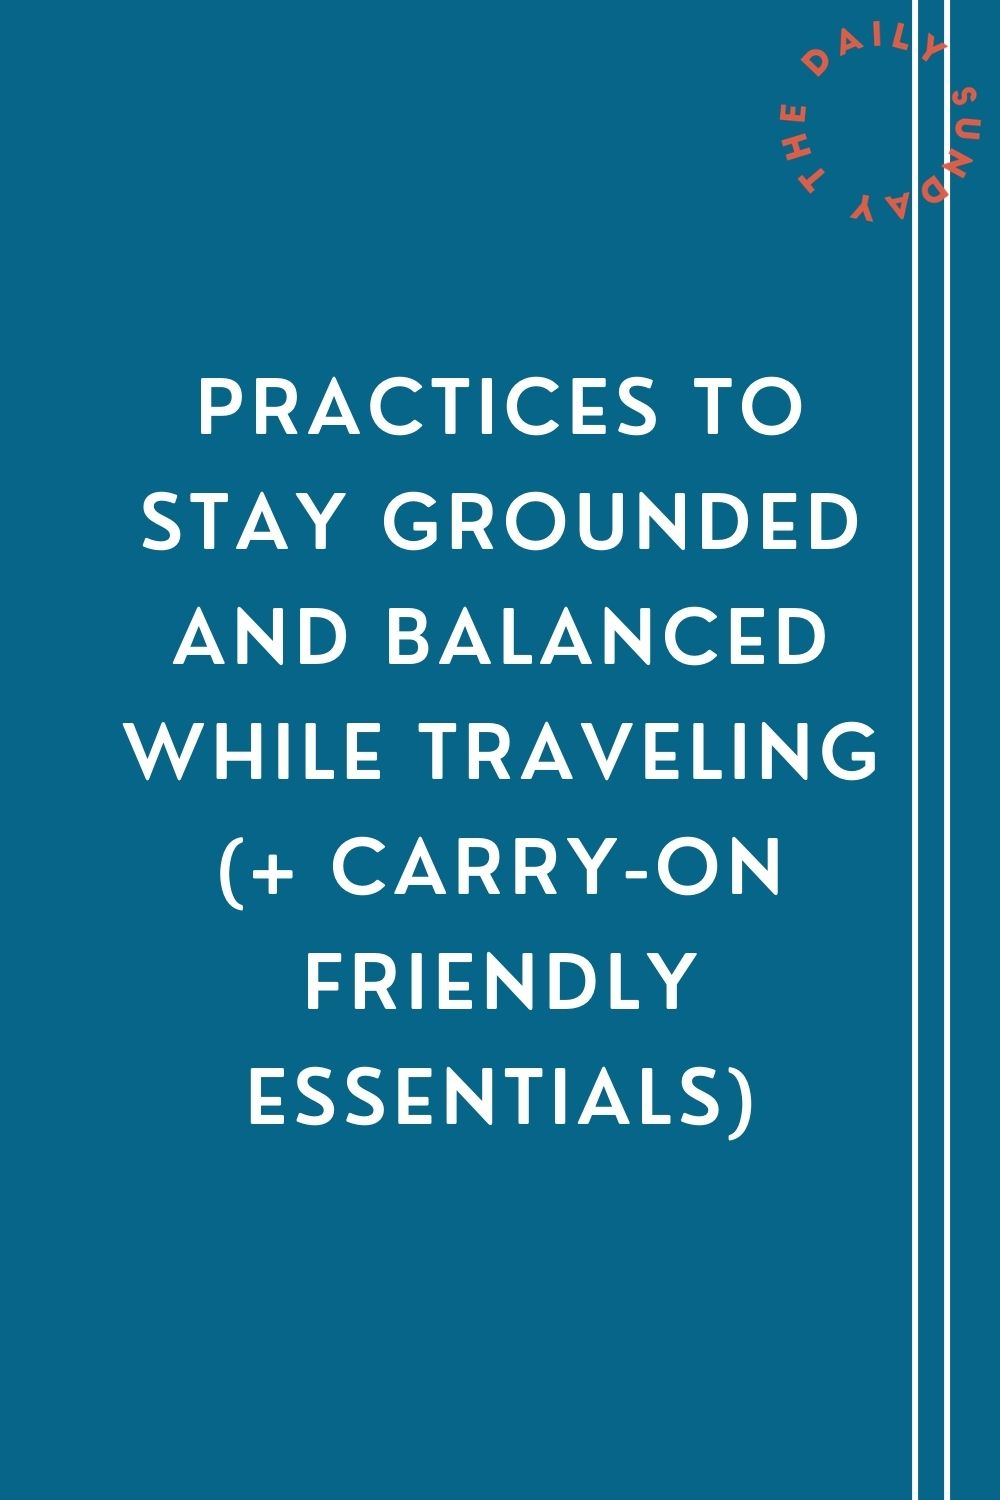 practices to stay grounded and balanced while traveling